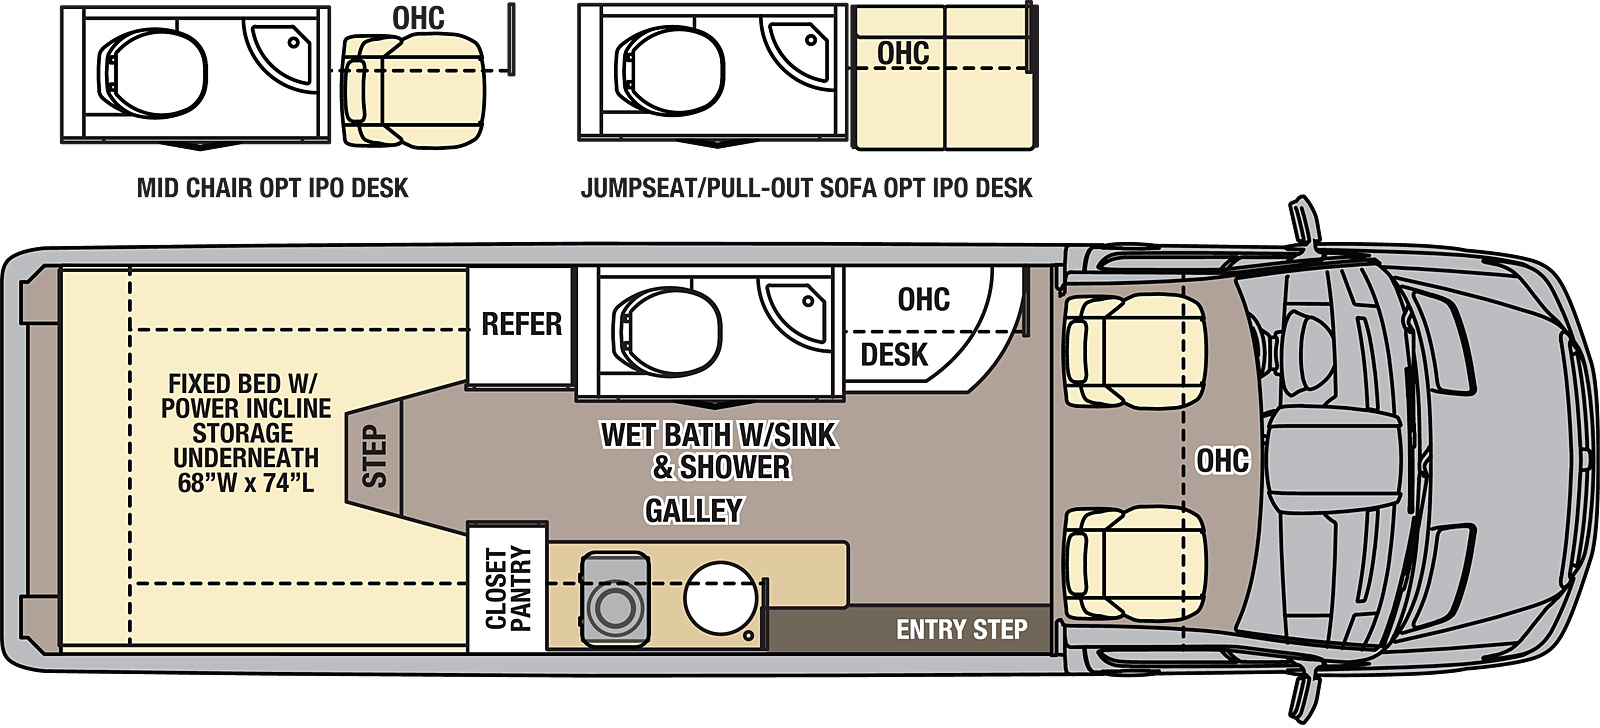 New & Used Cl B Motorhomes For Sale | Lazydays Rv Motorhomes Floor Plans on 24' motorhome floor plans, type b motorhome floor plans, rv bunk floor plans, heavy equipment floor plans, motorhome repair floor plans, shasta rvs floor plans, class b rv floor plans, fleetwood rv floor plans, small rv floor plans, class c rv floor plans, rv cabins floor plans, rv dealers floor plans, motorhome with bunks floor plans, class a rv floor plans, large rv floor plans, mobile home floor plans, tour motorhome floor plans, luxury motorhome floor plans, rv toy haulers floor plans, rv home floor plans,